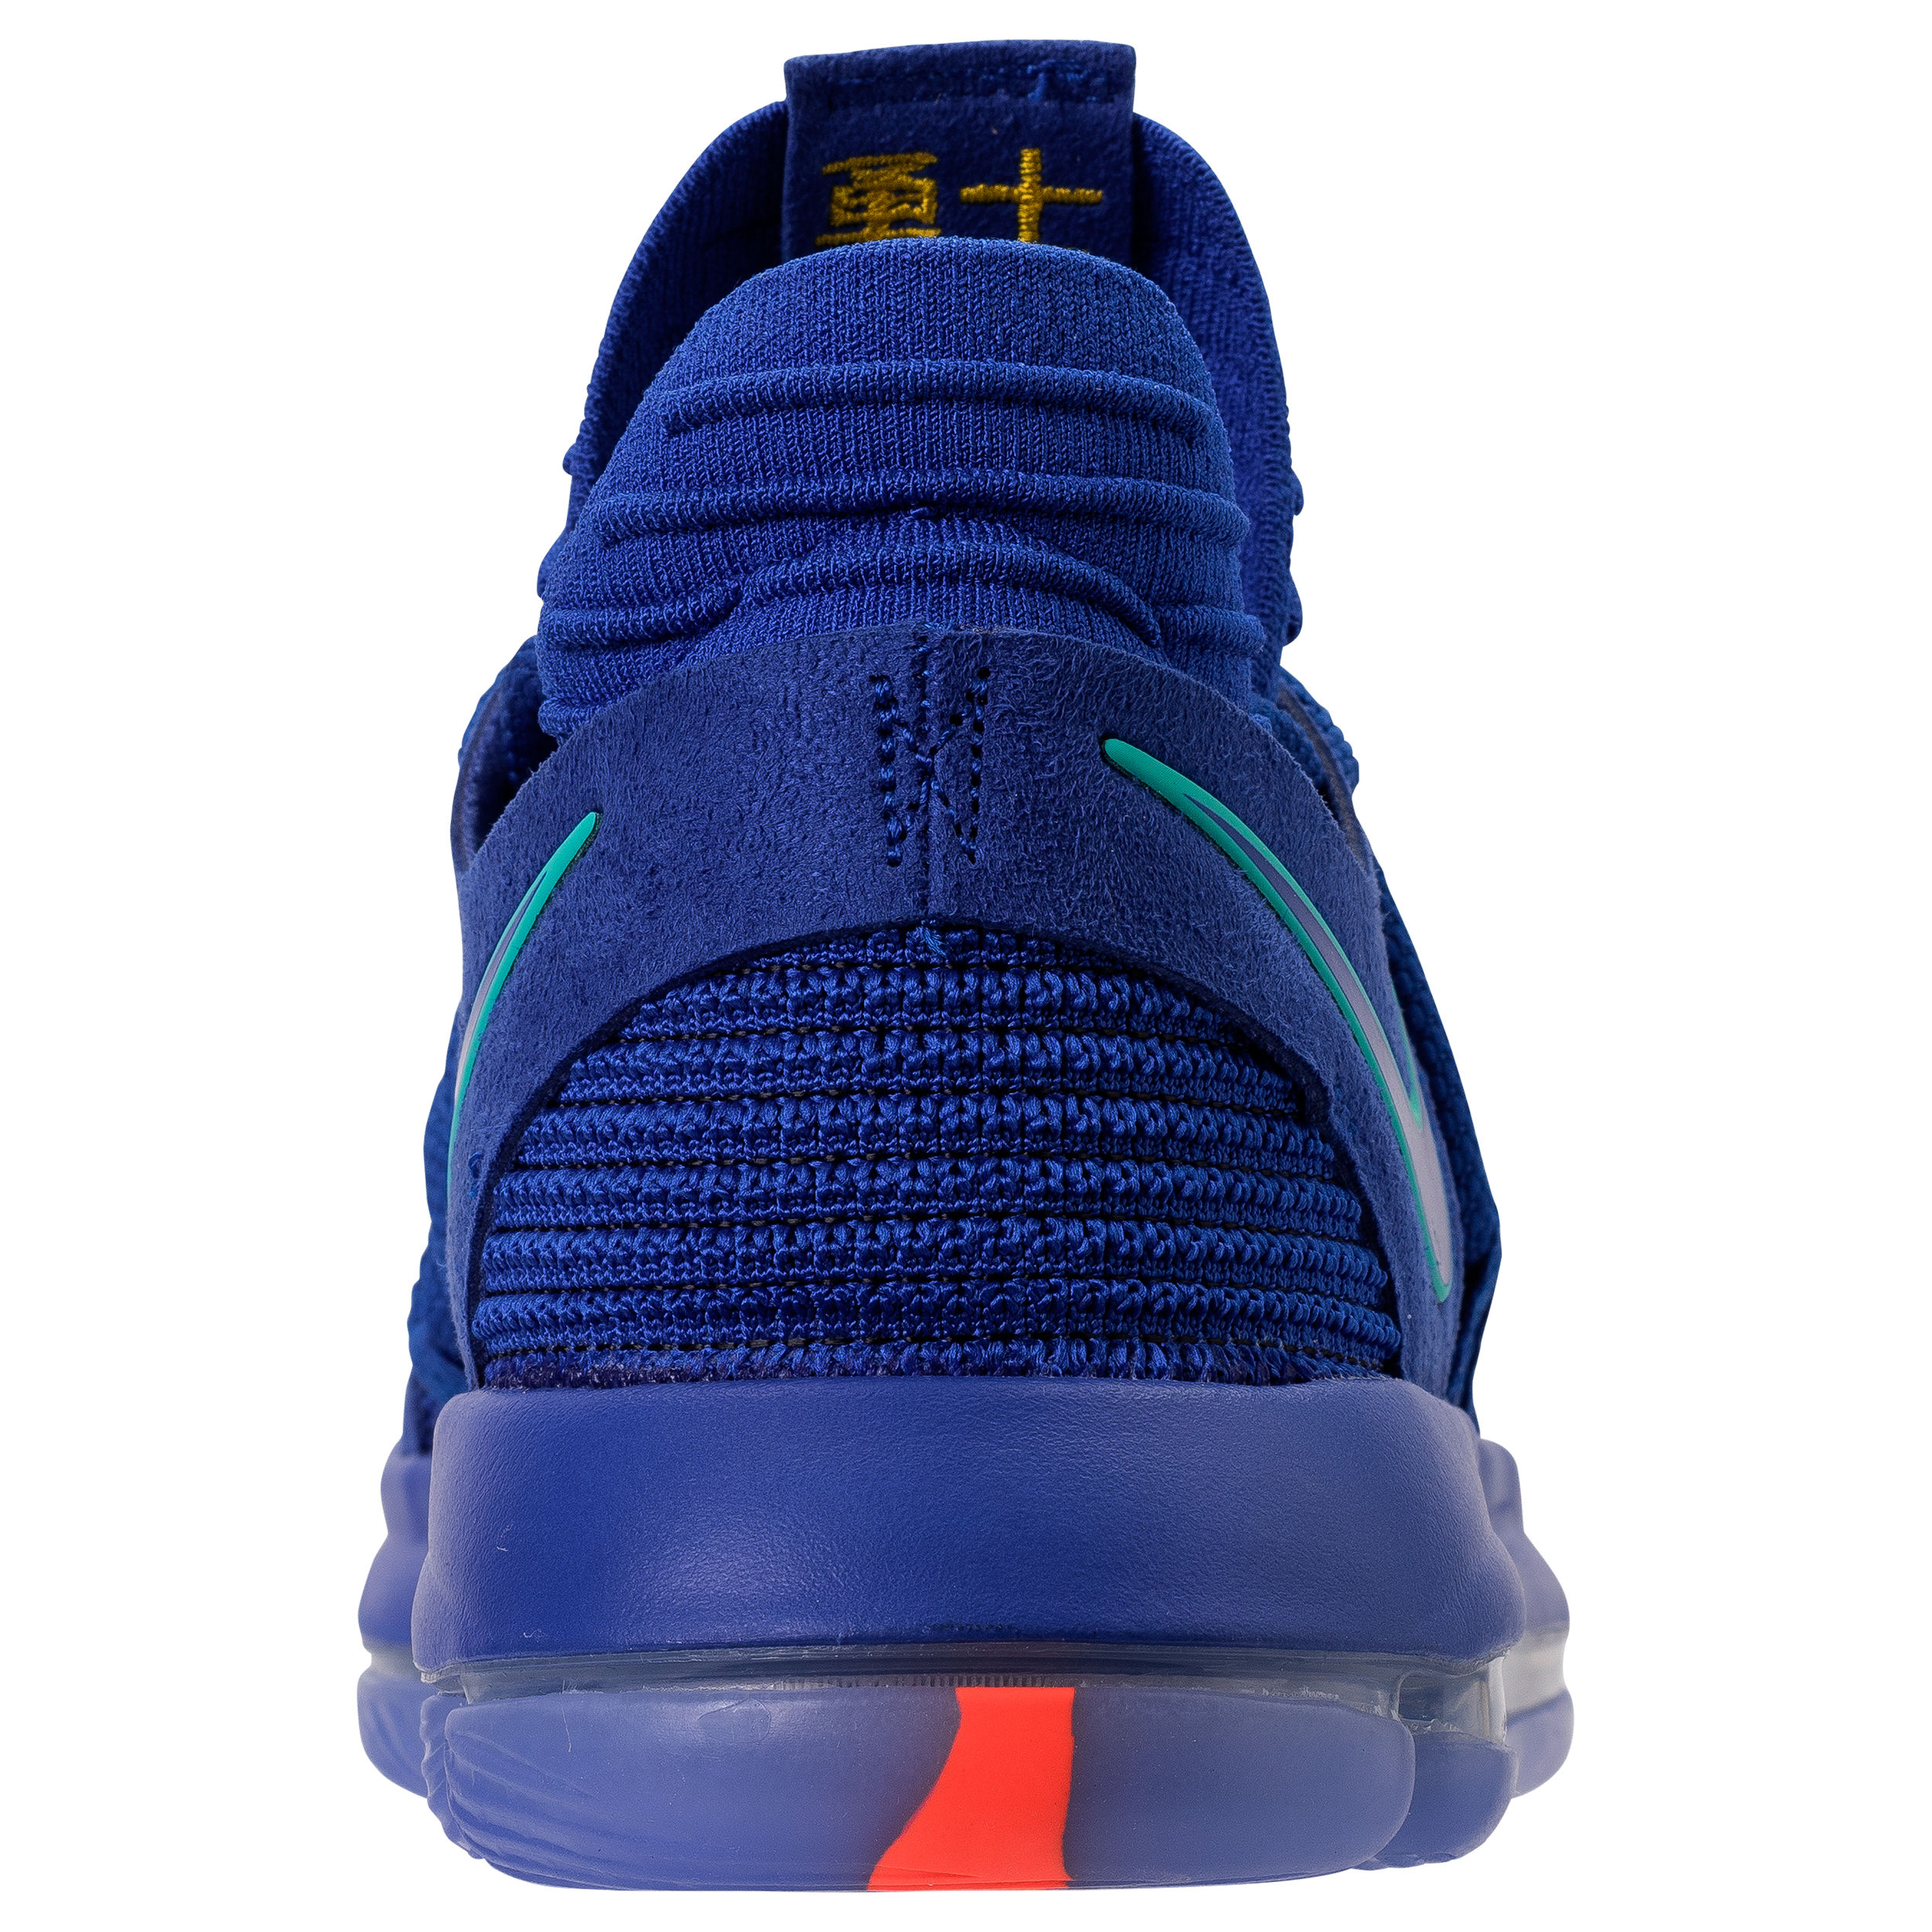 nike kd 10 city edition 5 - WearTesters fe18dad91